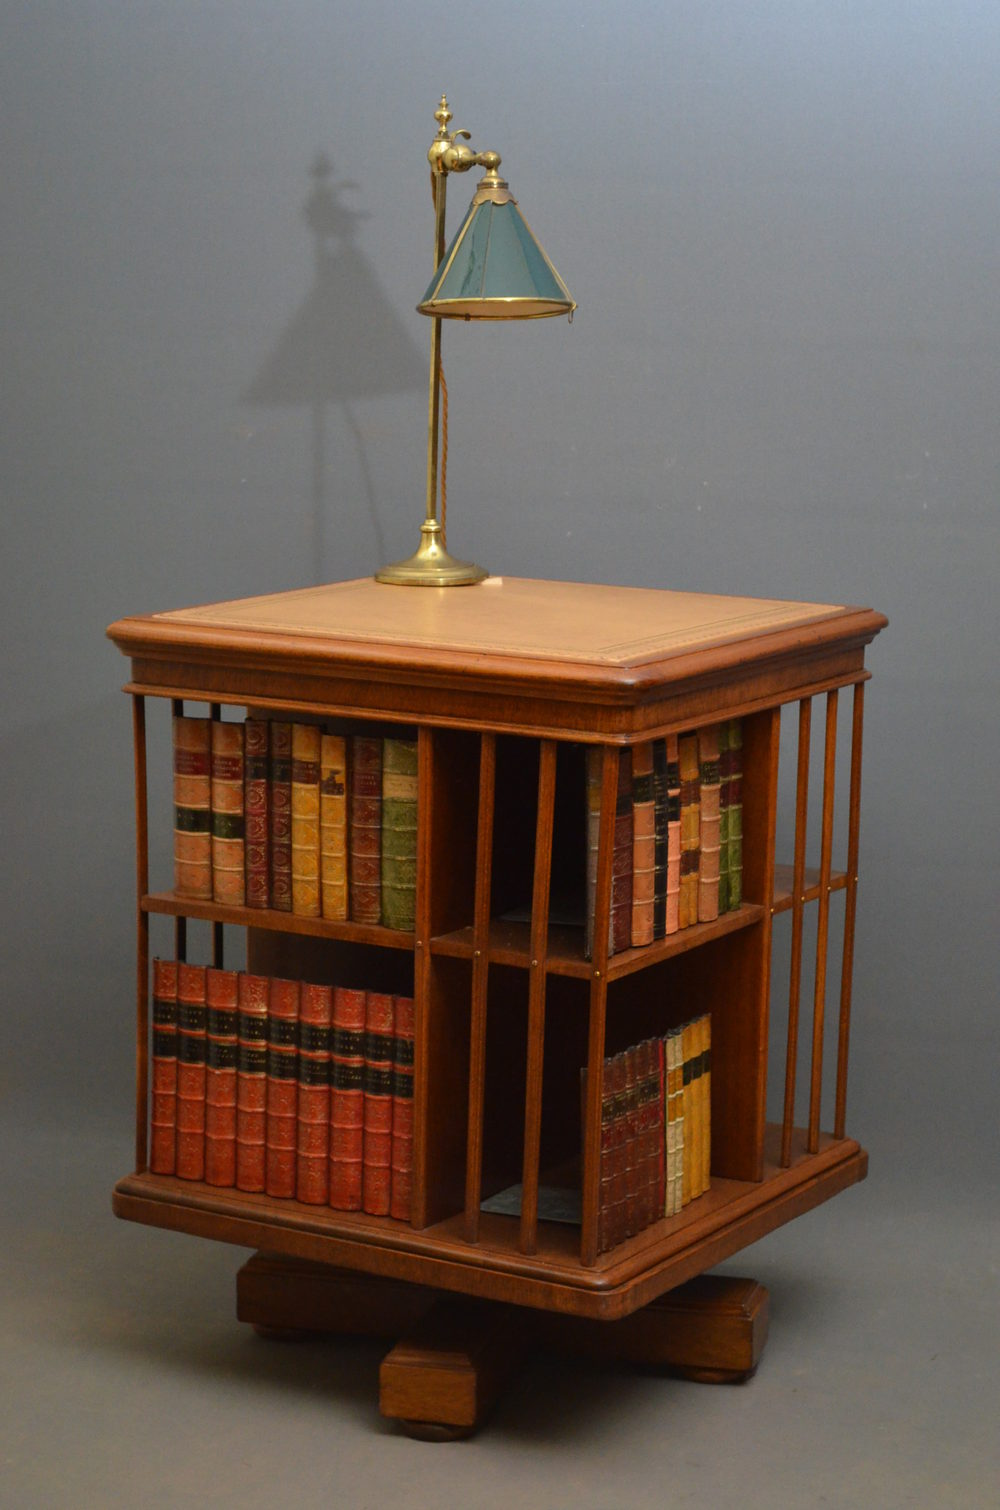 com to inspirational book round antique bookcase pertaining brilliant end table scenic revolving